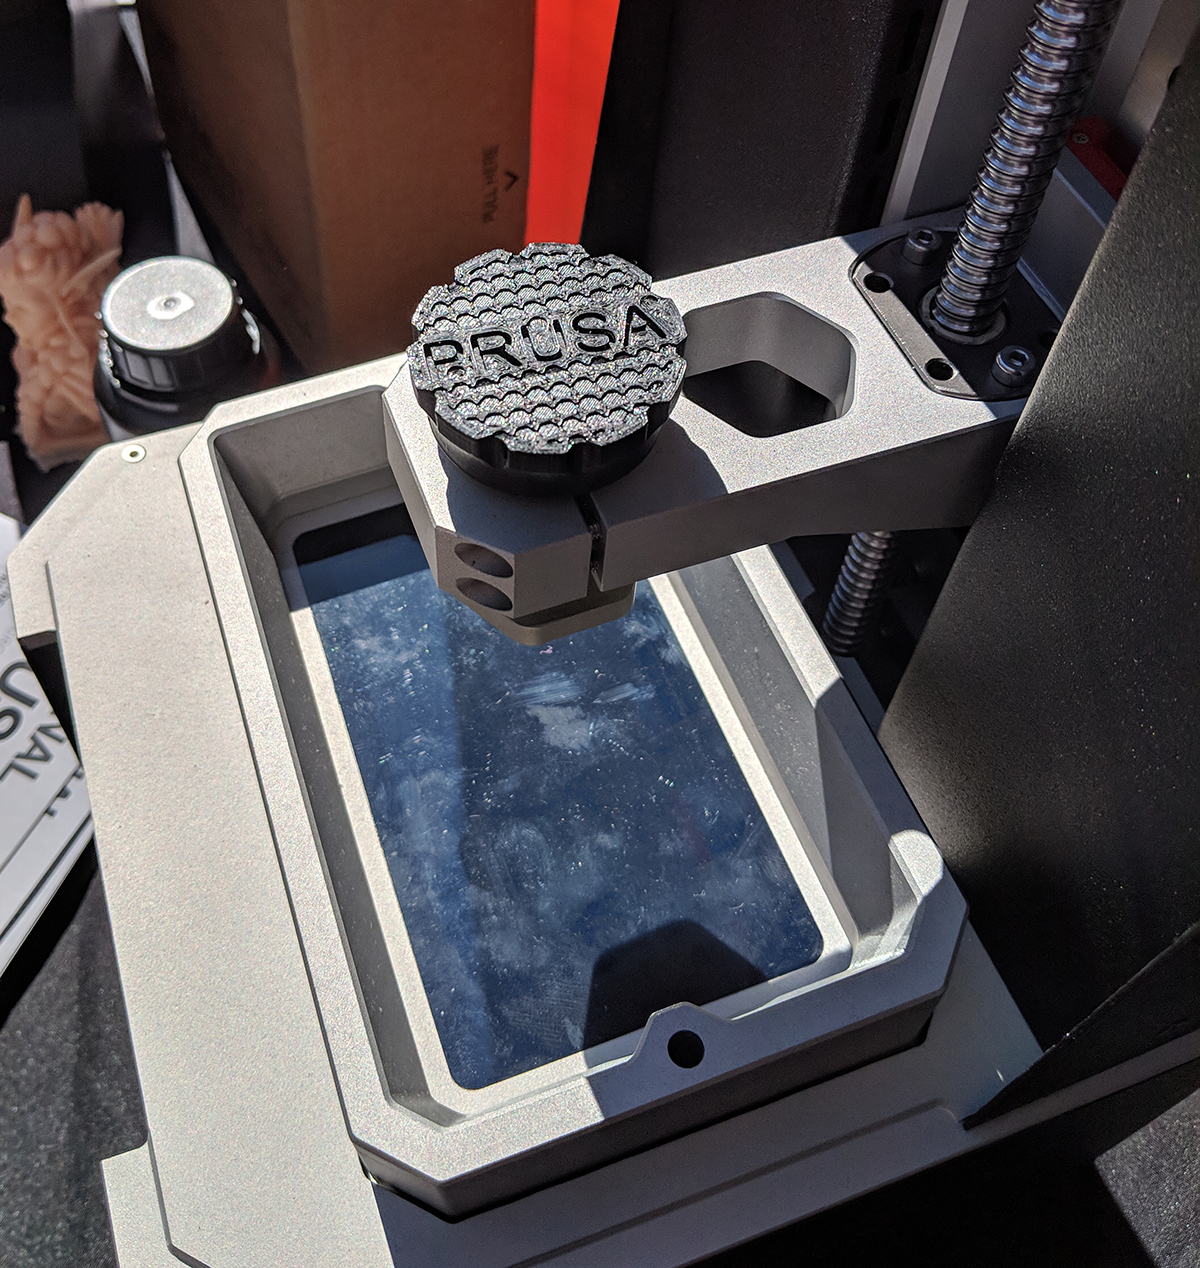 Prusa Introduces A Resin Printer At Maker Faire NY | Hackaday